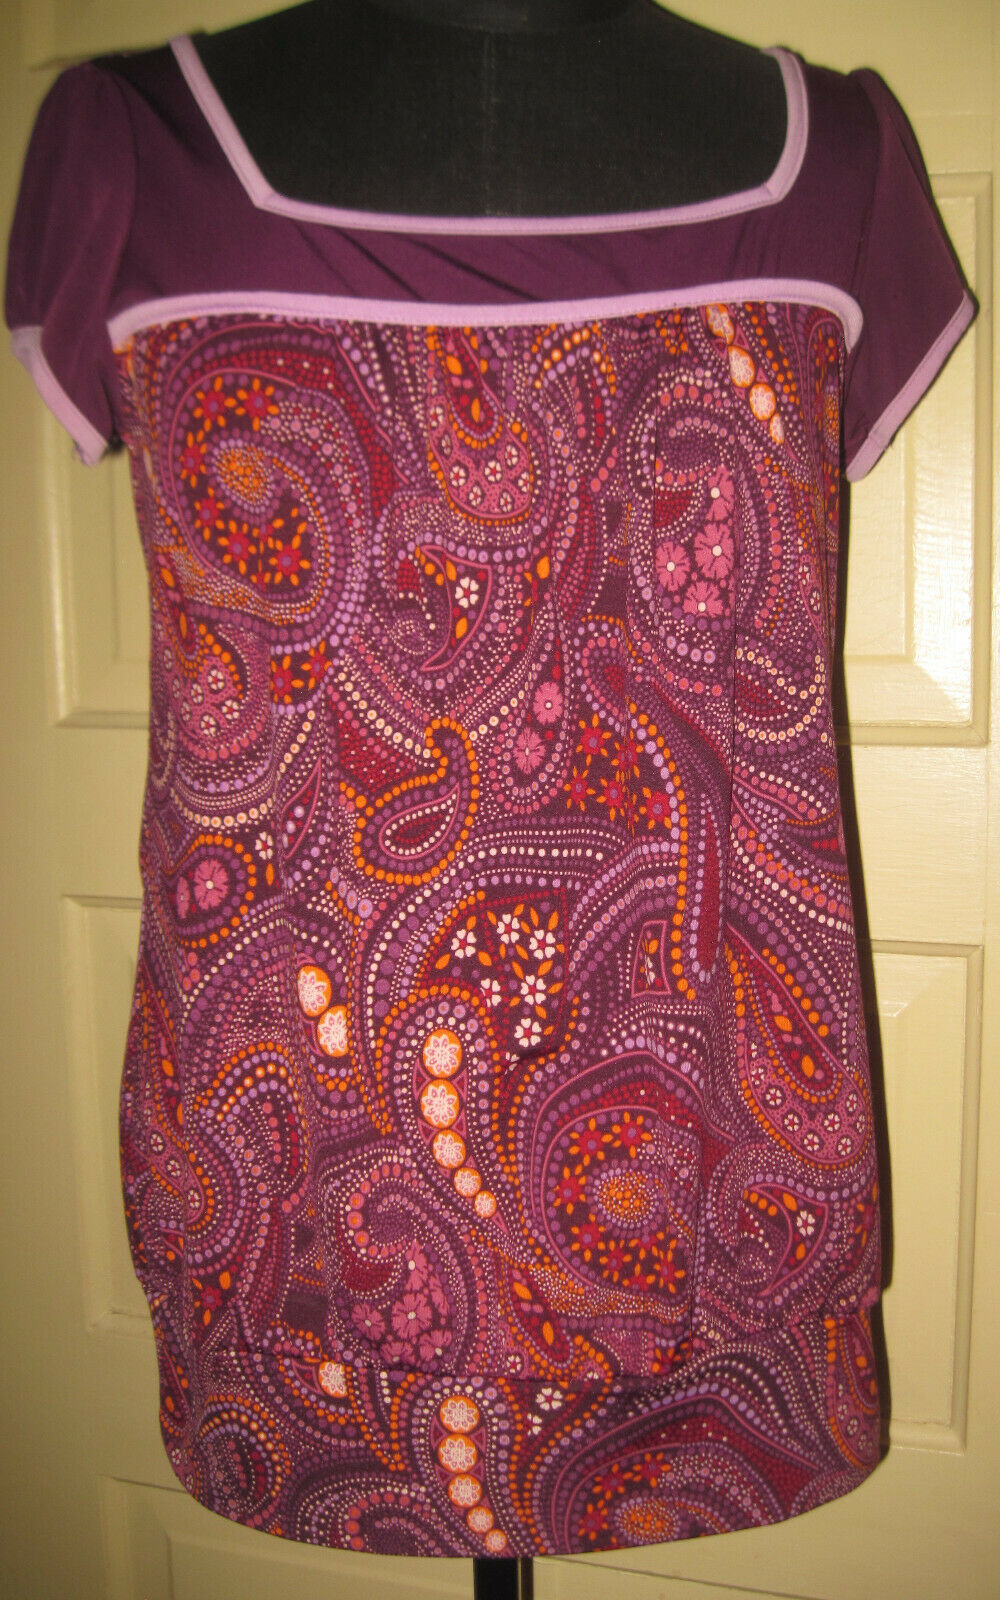 SIXTEEN Jr's Stretch Purple Paisley Silky SS Top Shirt Blouse M FREE SHIP